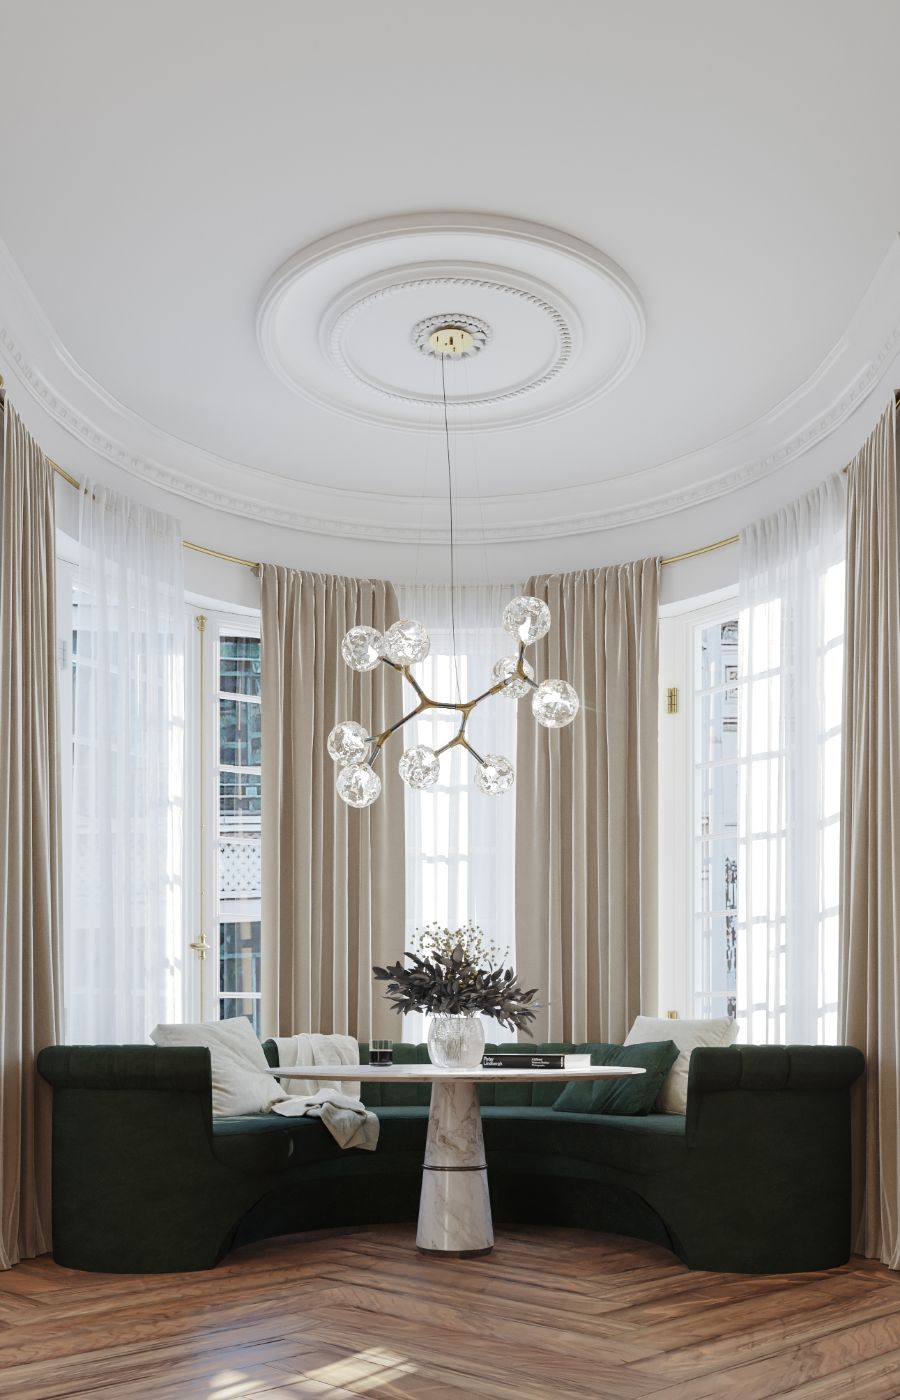 The Eternel Apartment with a Contemporary and Classic Design the eternel apartmentThe Eternel Apartment with a Contemporary and Classic DesignThe Eternel Parisian Apartment Mixing Classic and Contemporary Design 6